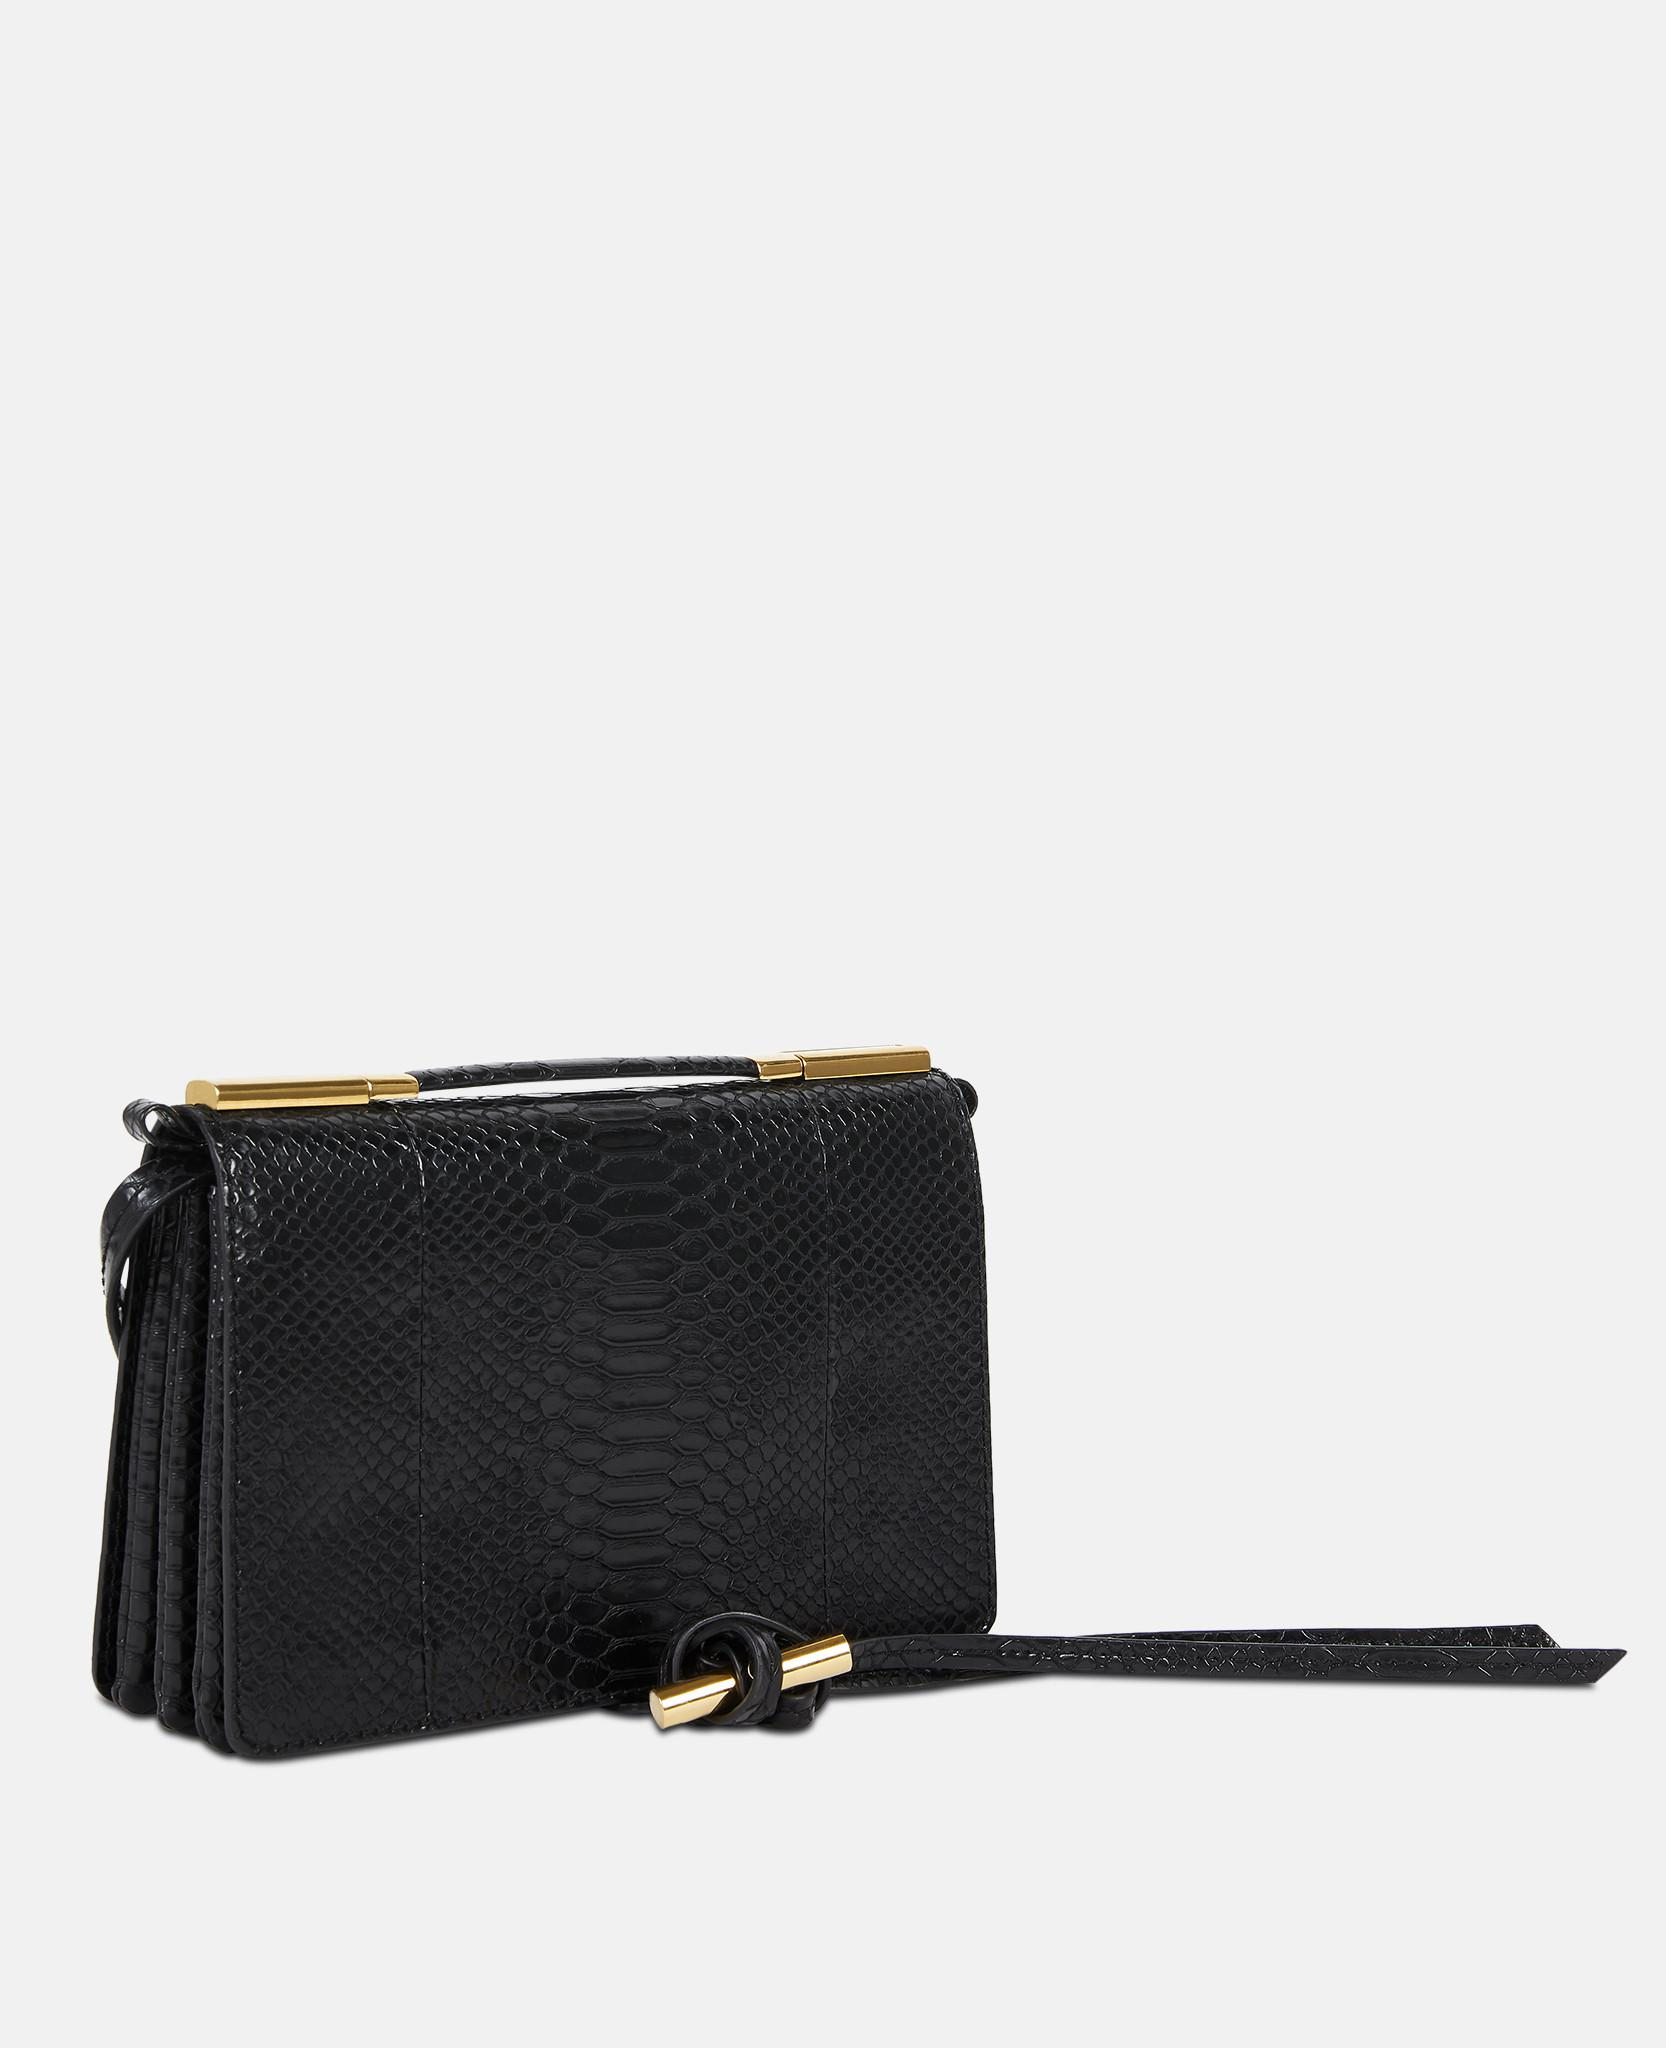 eacfec0c5101 Lyst - Stella McCartney Flo Small Shoulder Bag in Black